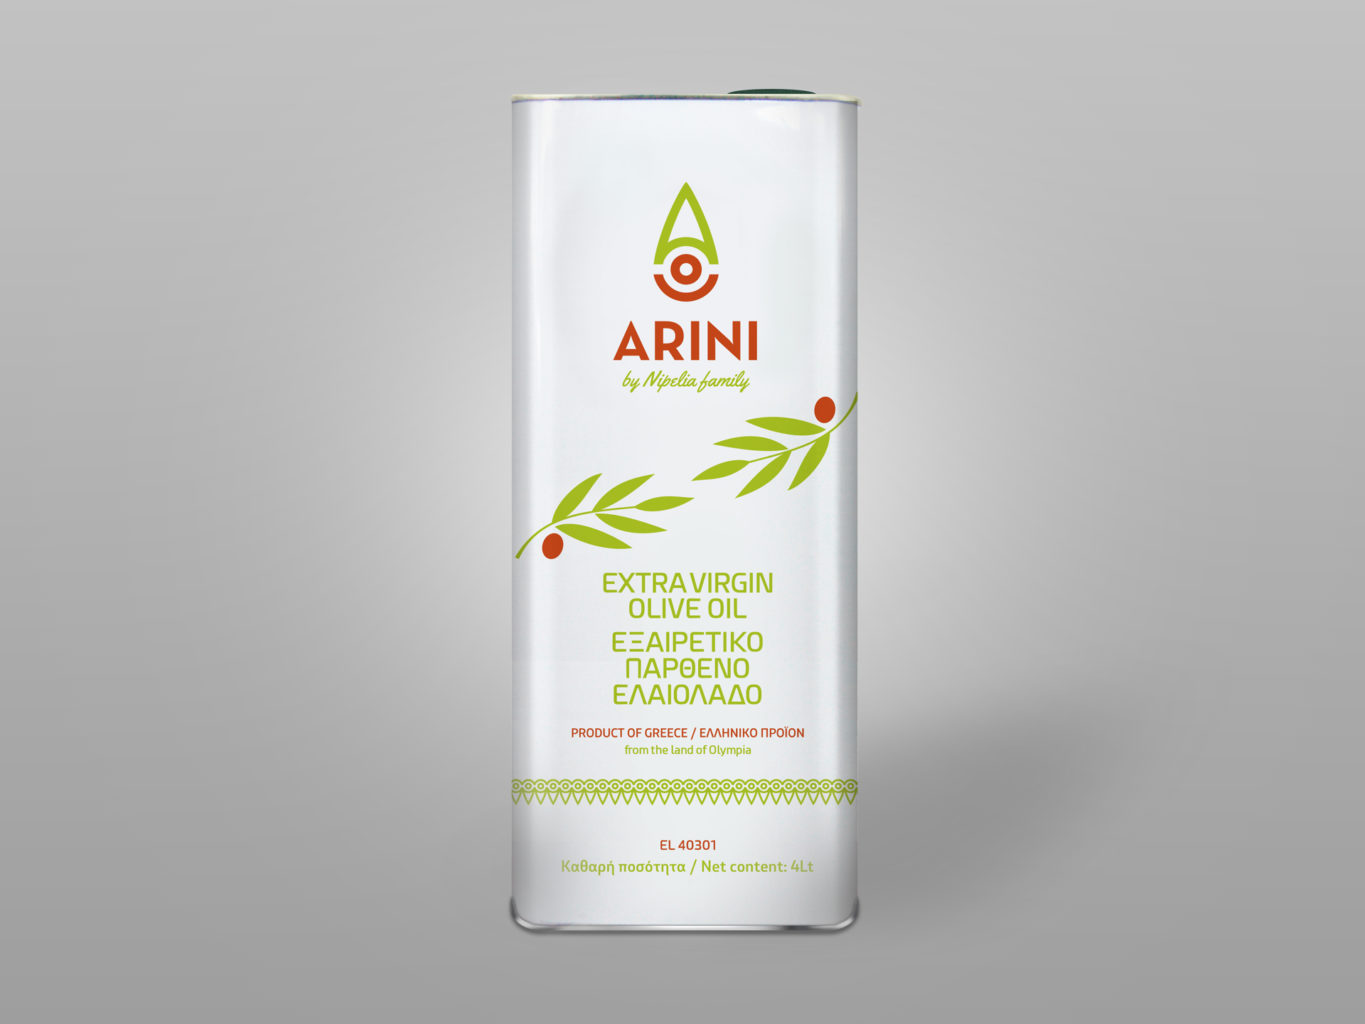 Arini Olive Oil packaging